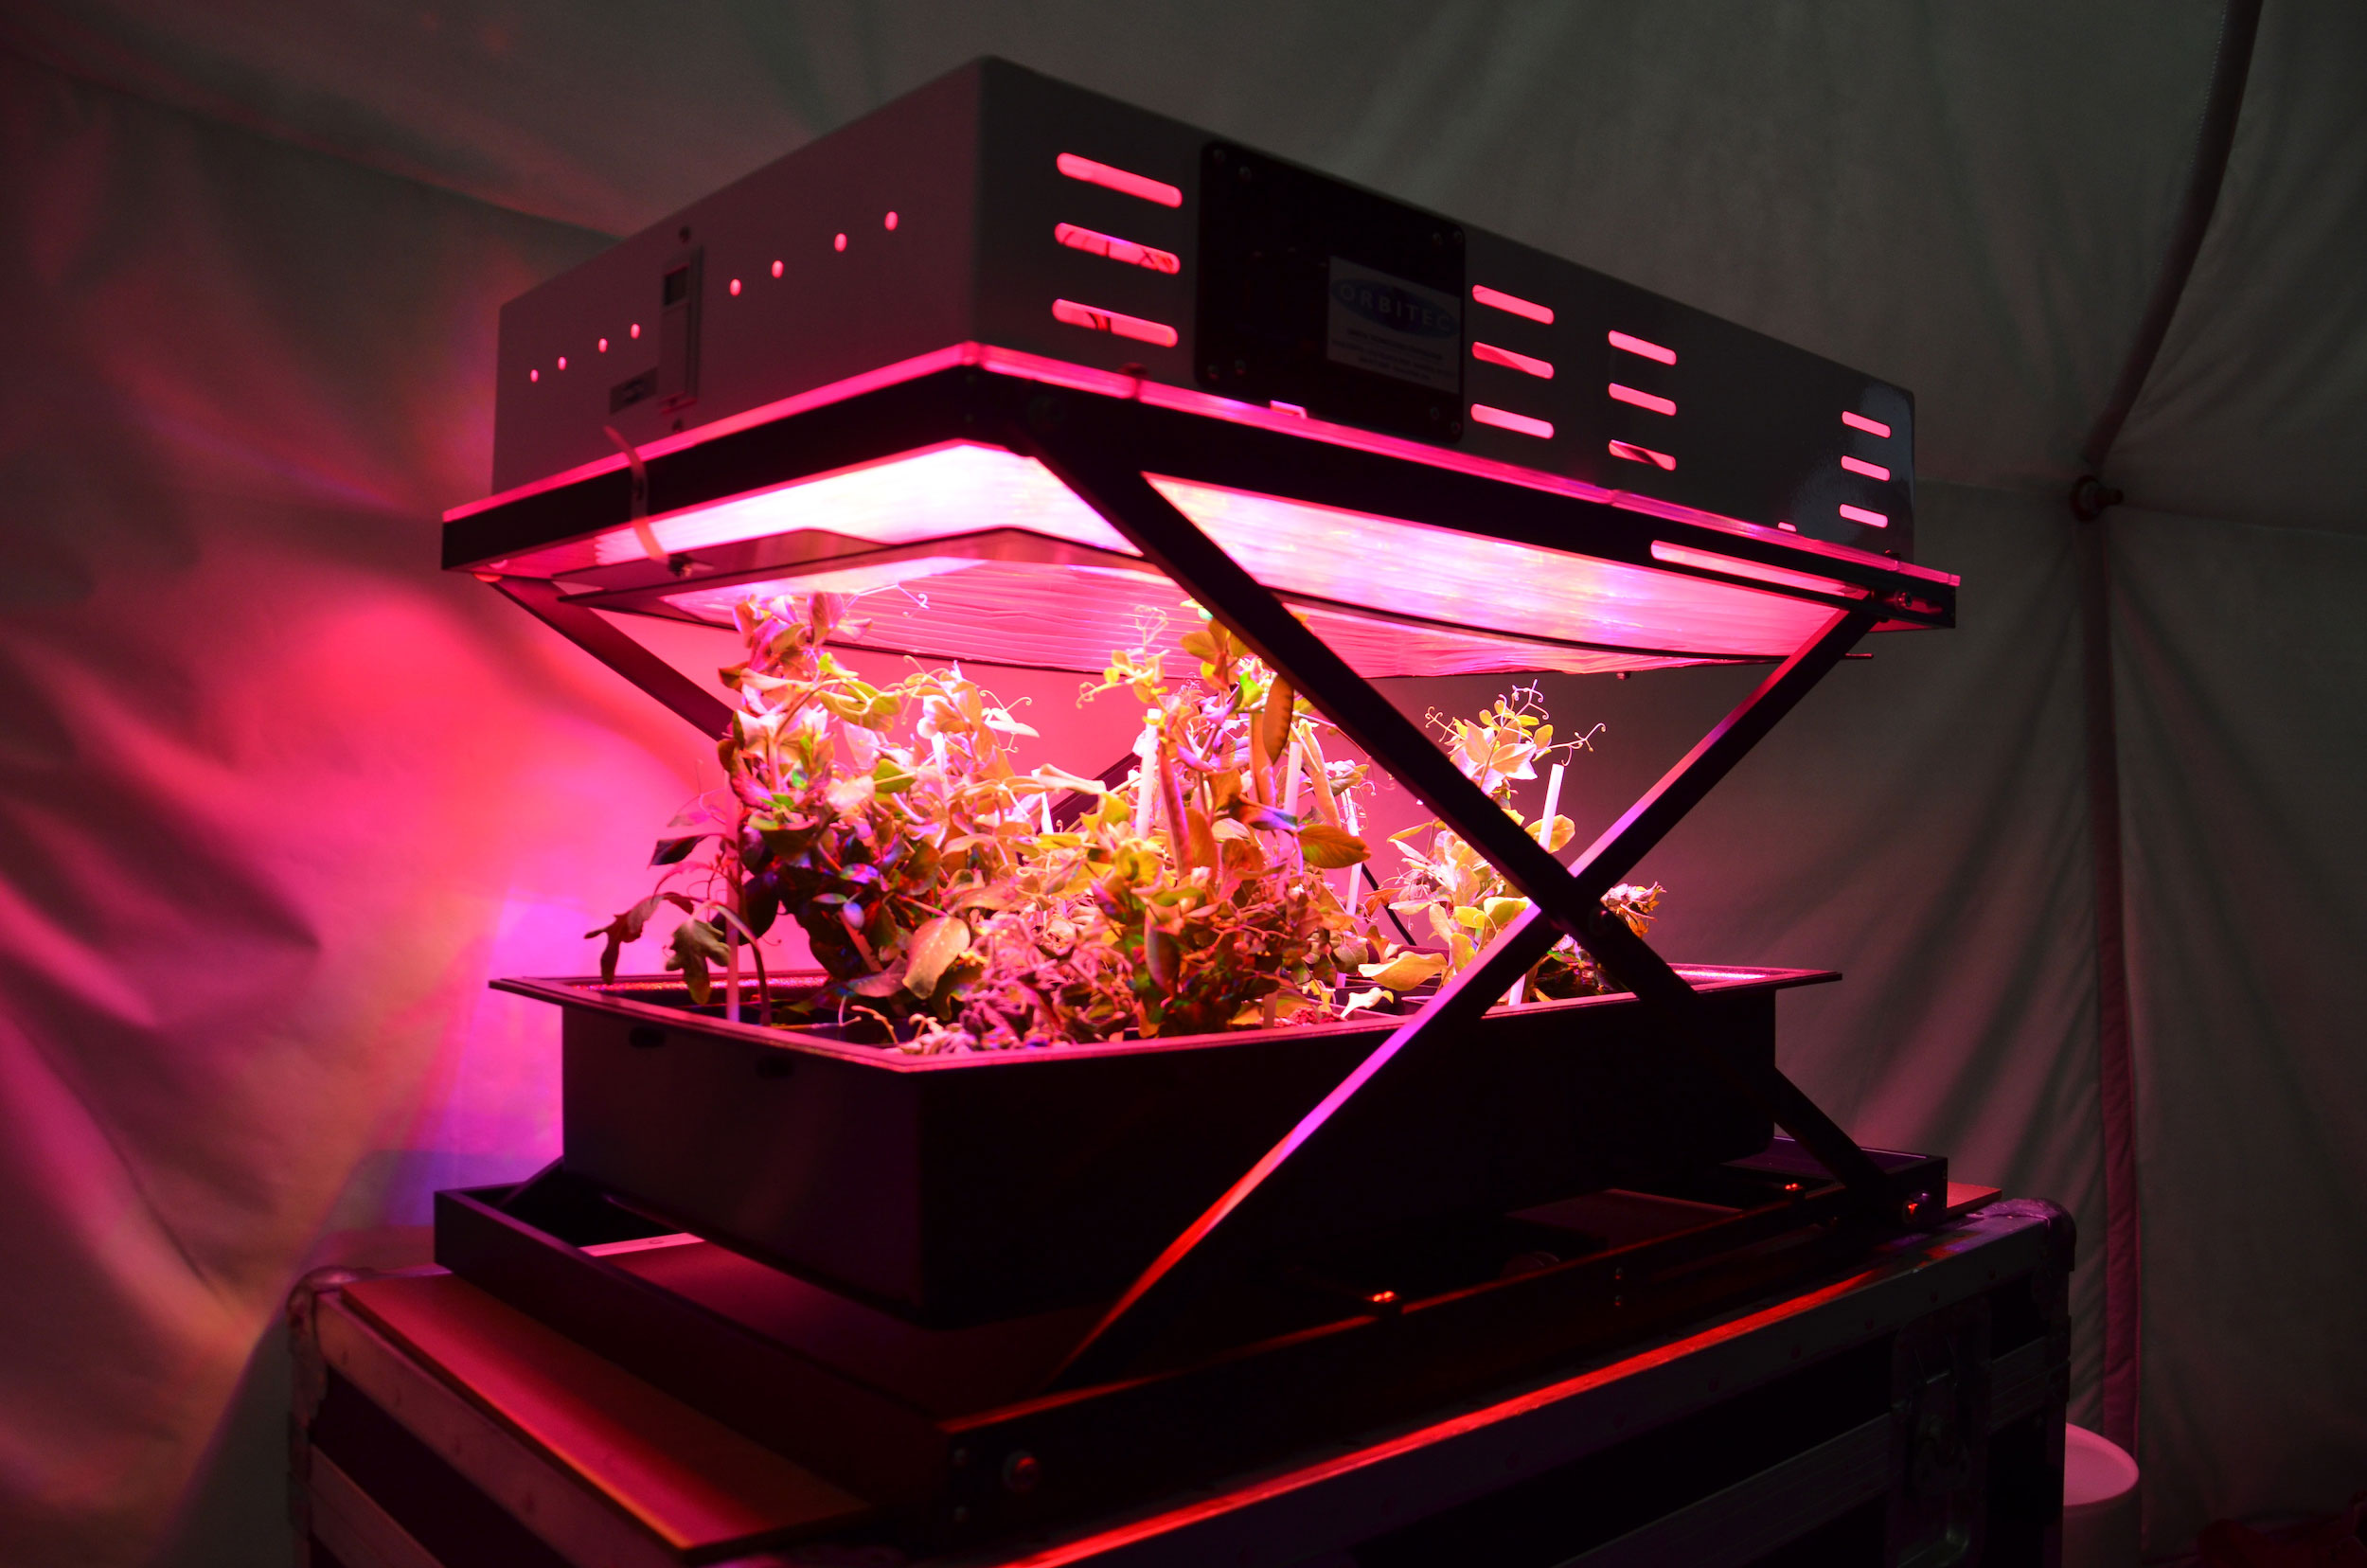 The VEGGIES prototype with a tomato crop growing within it. Credit: Ross Lockwood